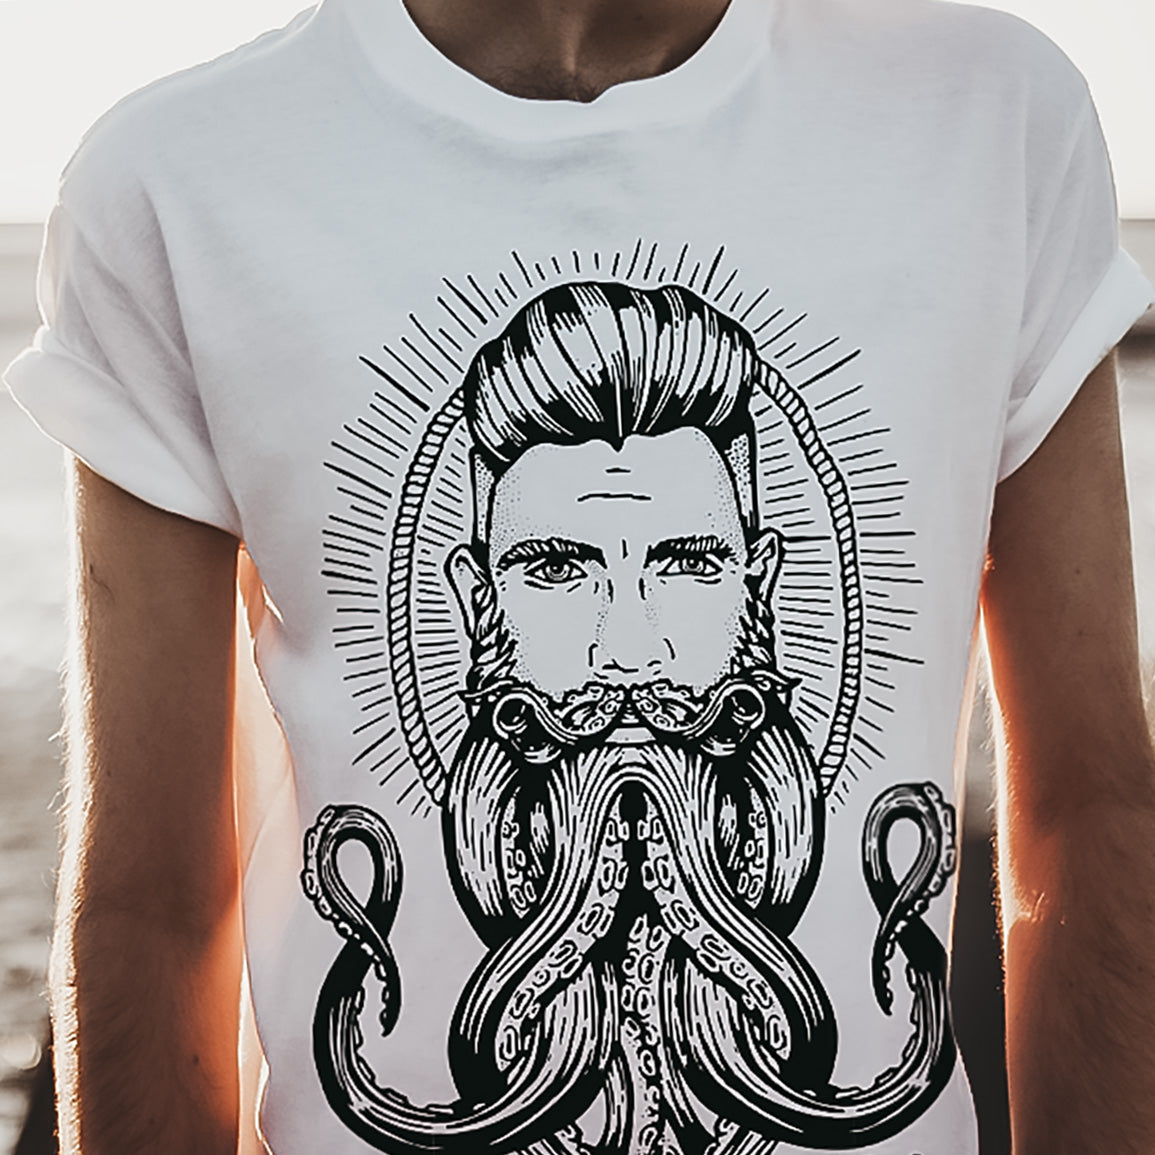 'Neptune' Octopus Beard T-Shirt